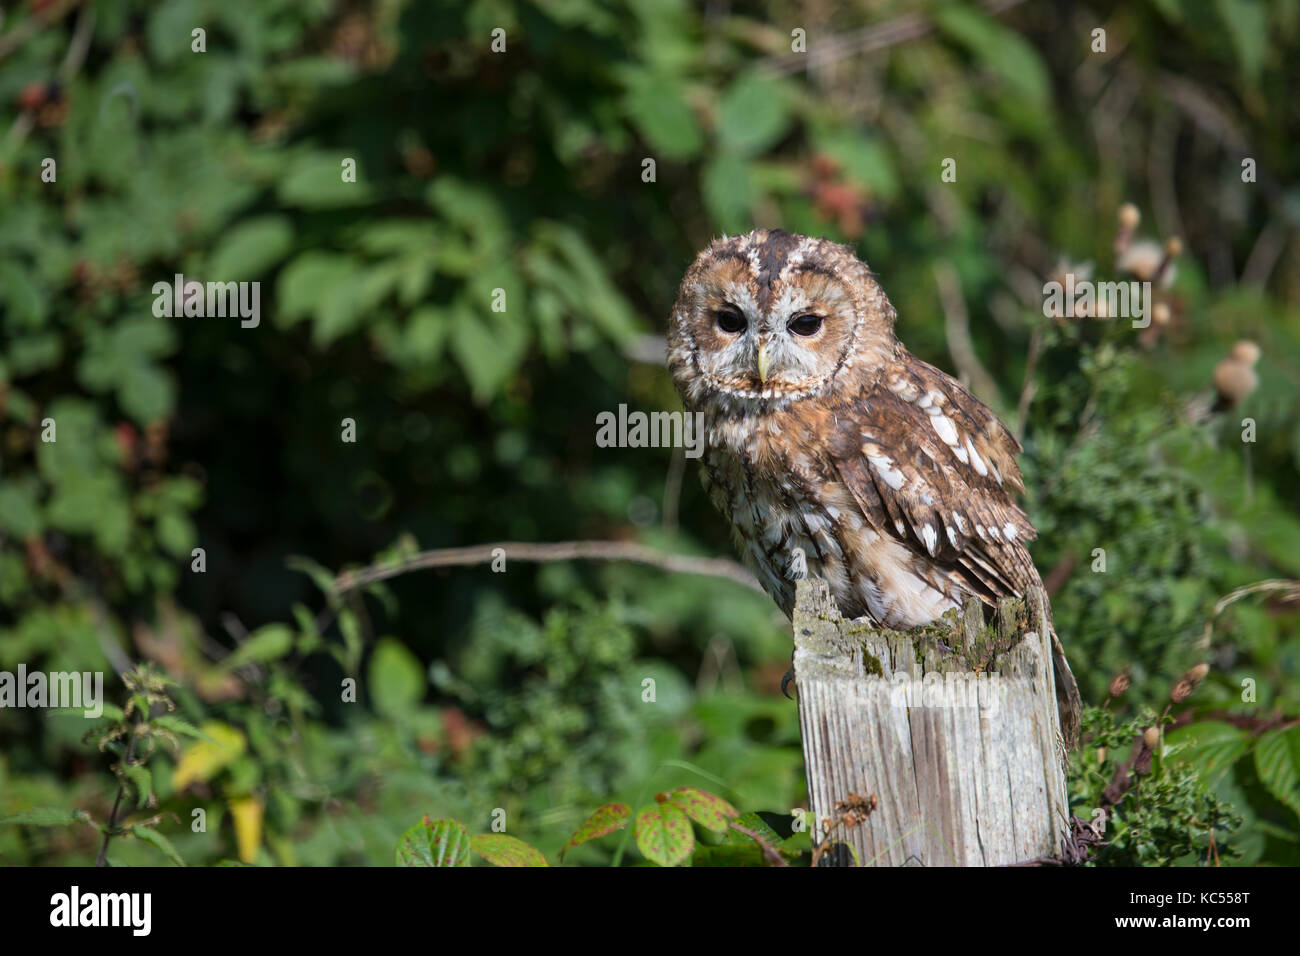 Tawny Owl Strix aluco perched on a wooden fence post in woodland - Stock Image